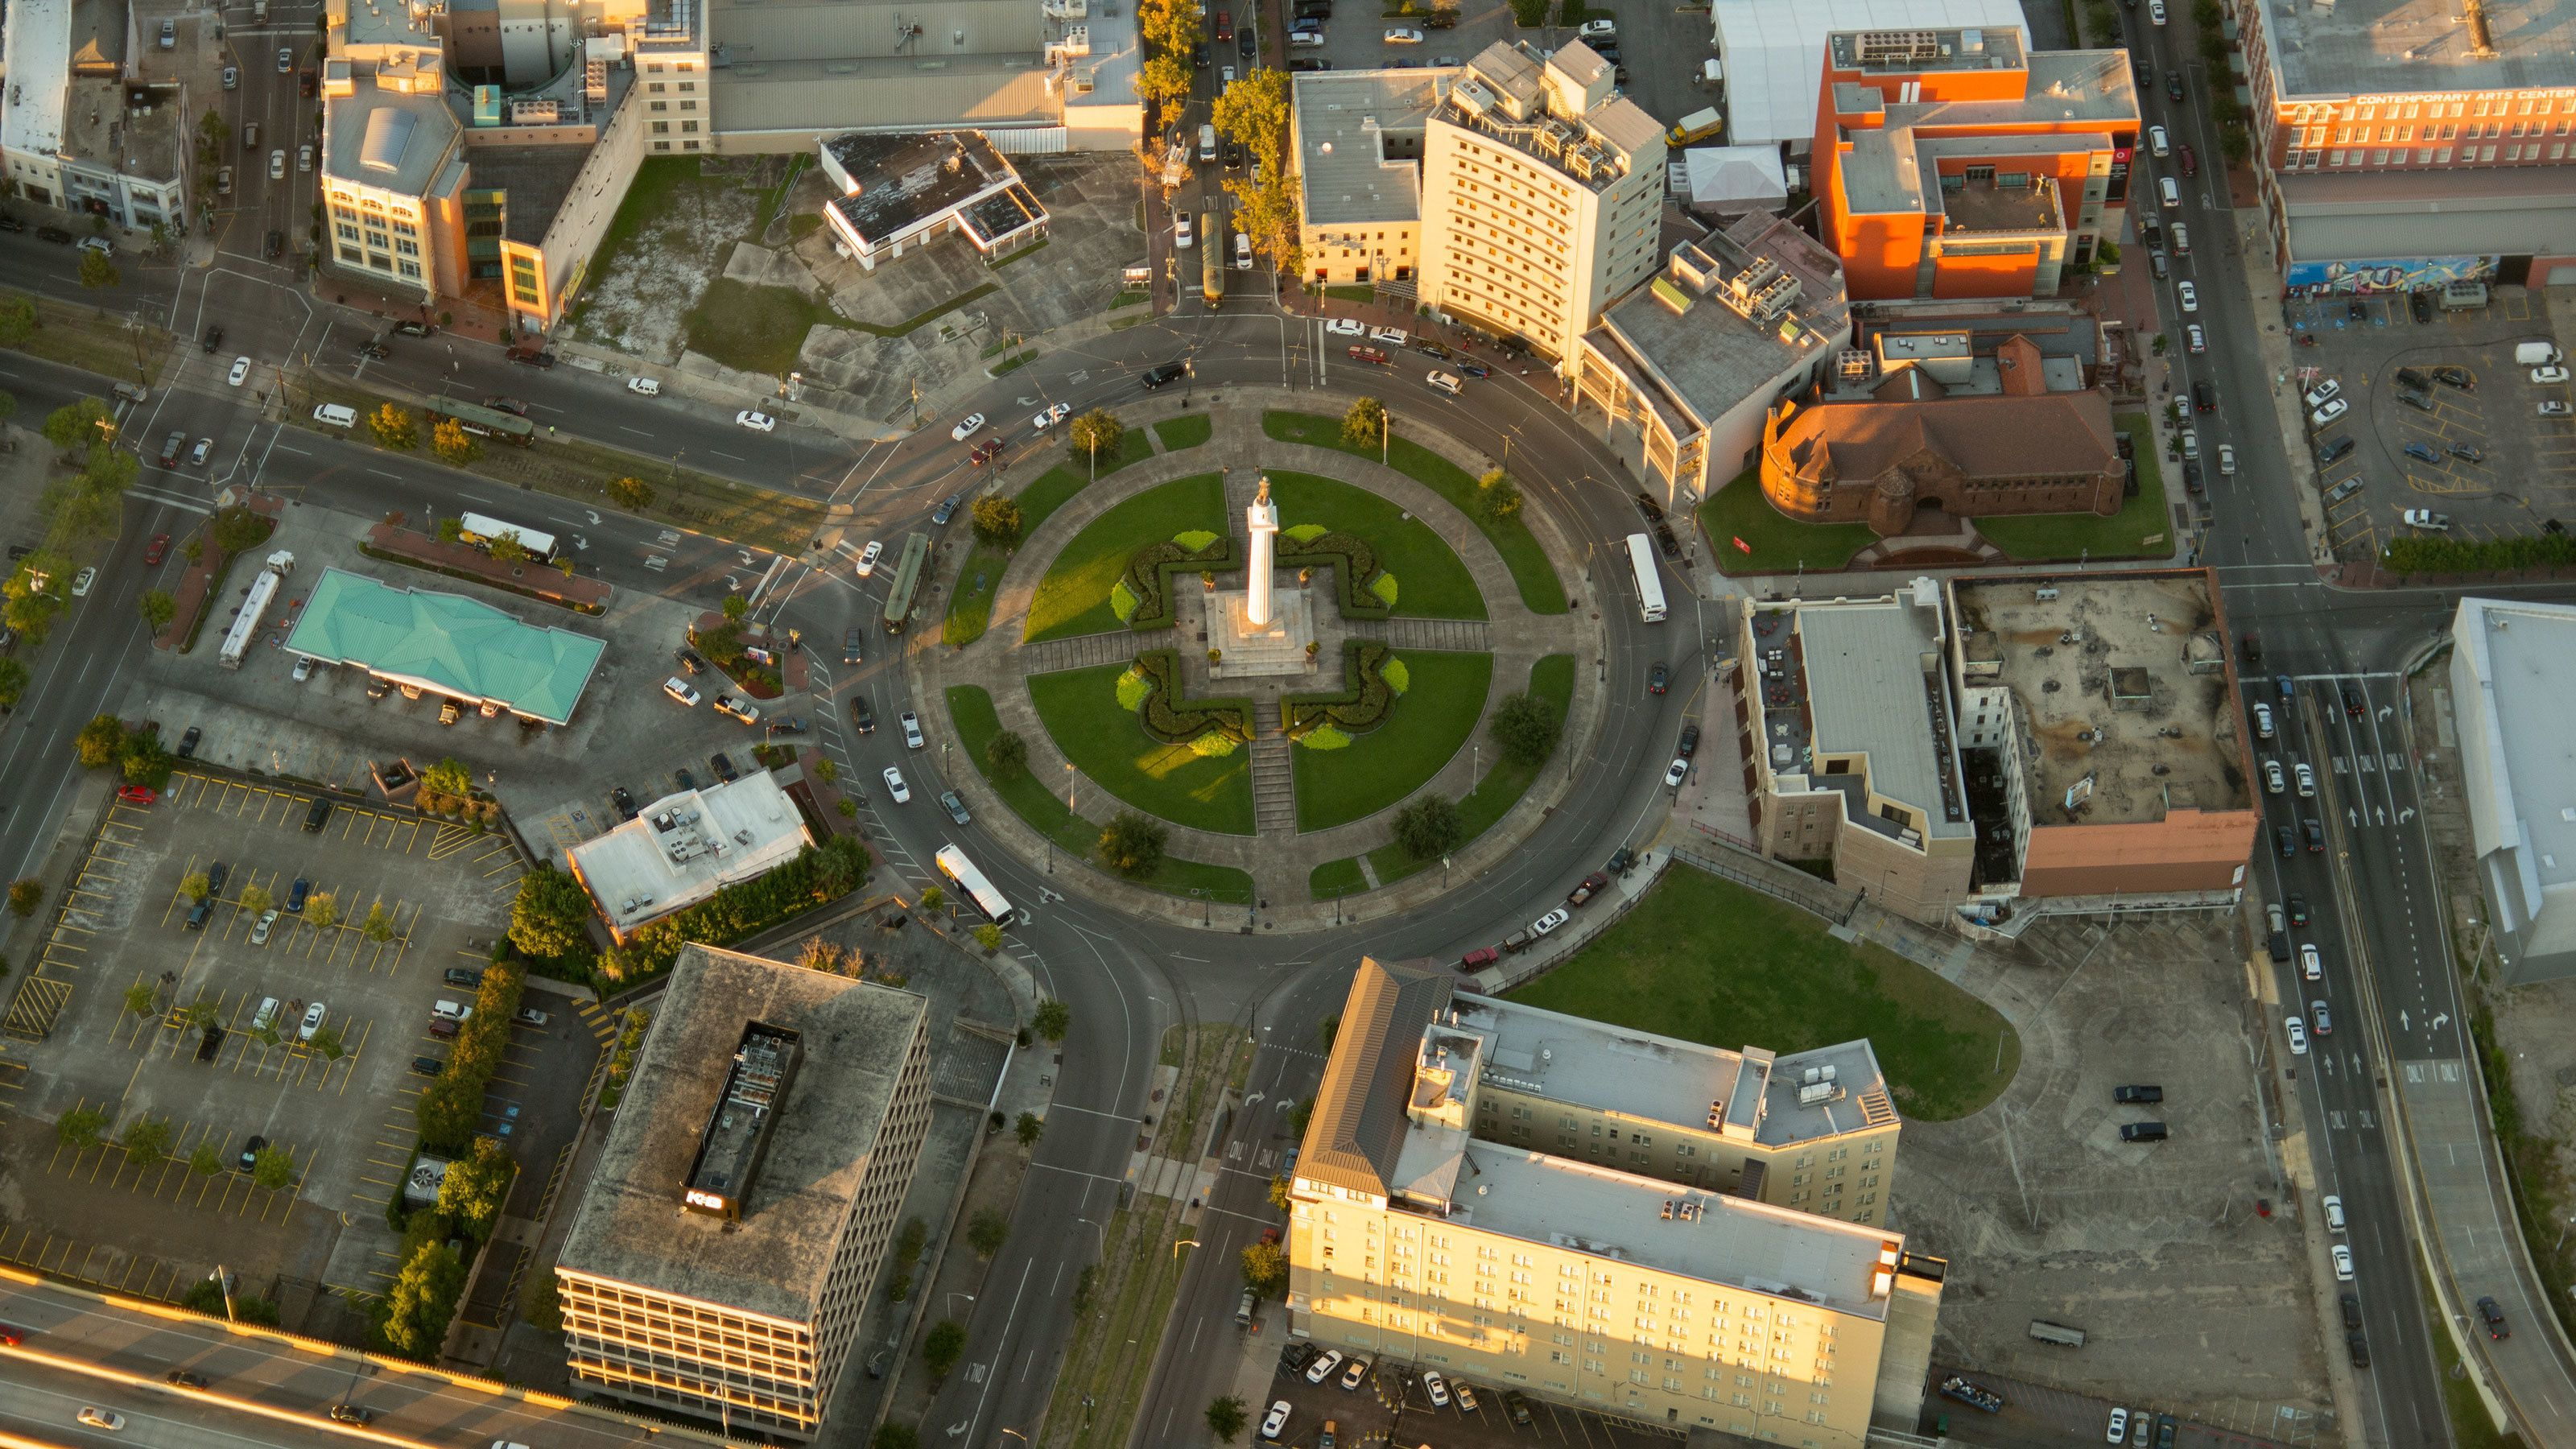 Ariel view of monument above New Orleans